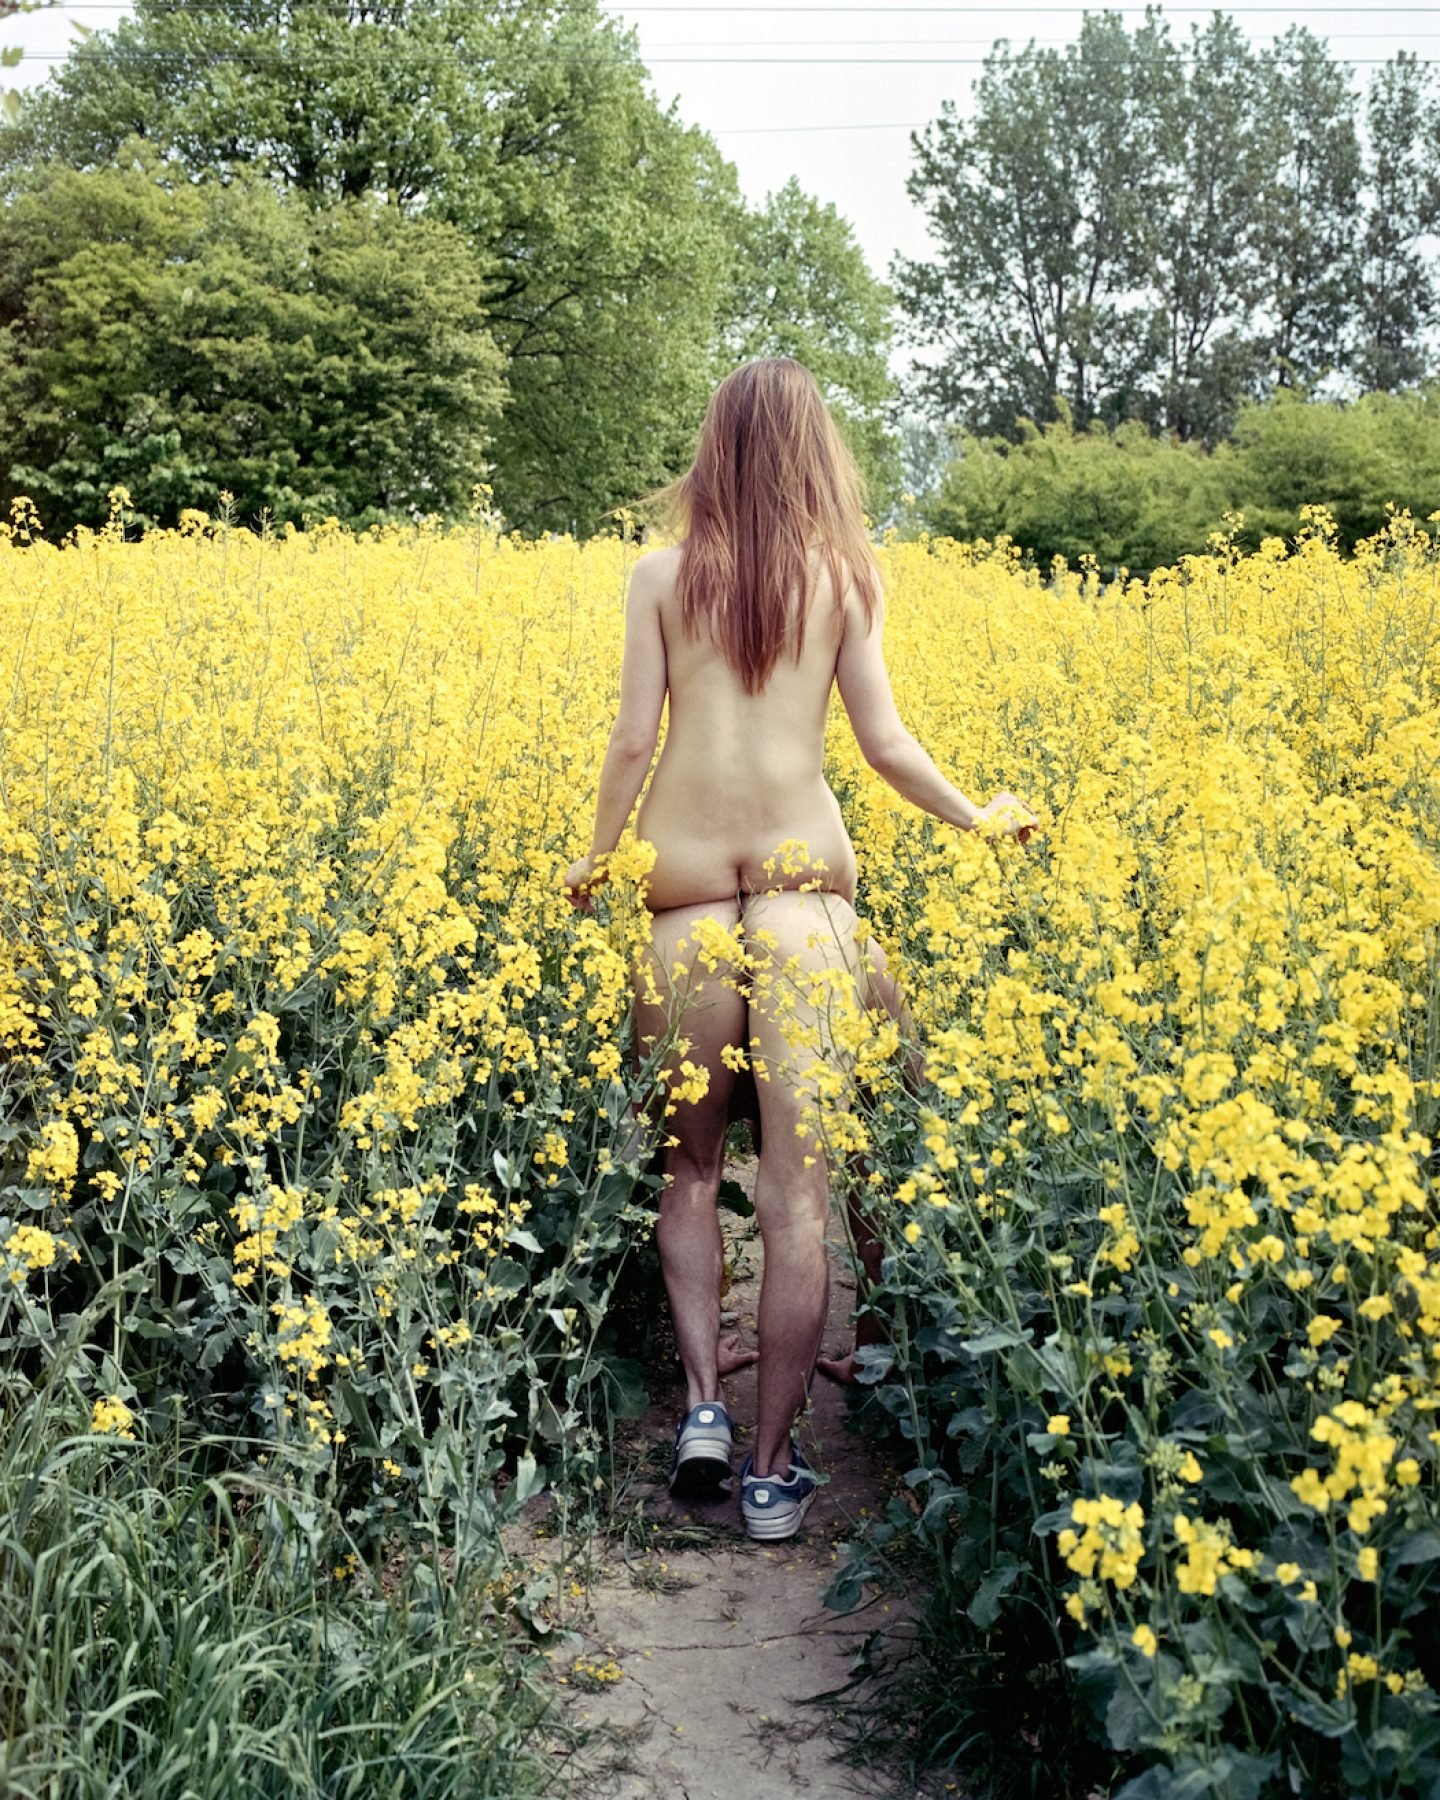 Photography_AdeY_Nudes_15